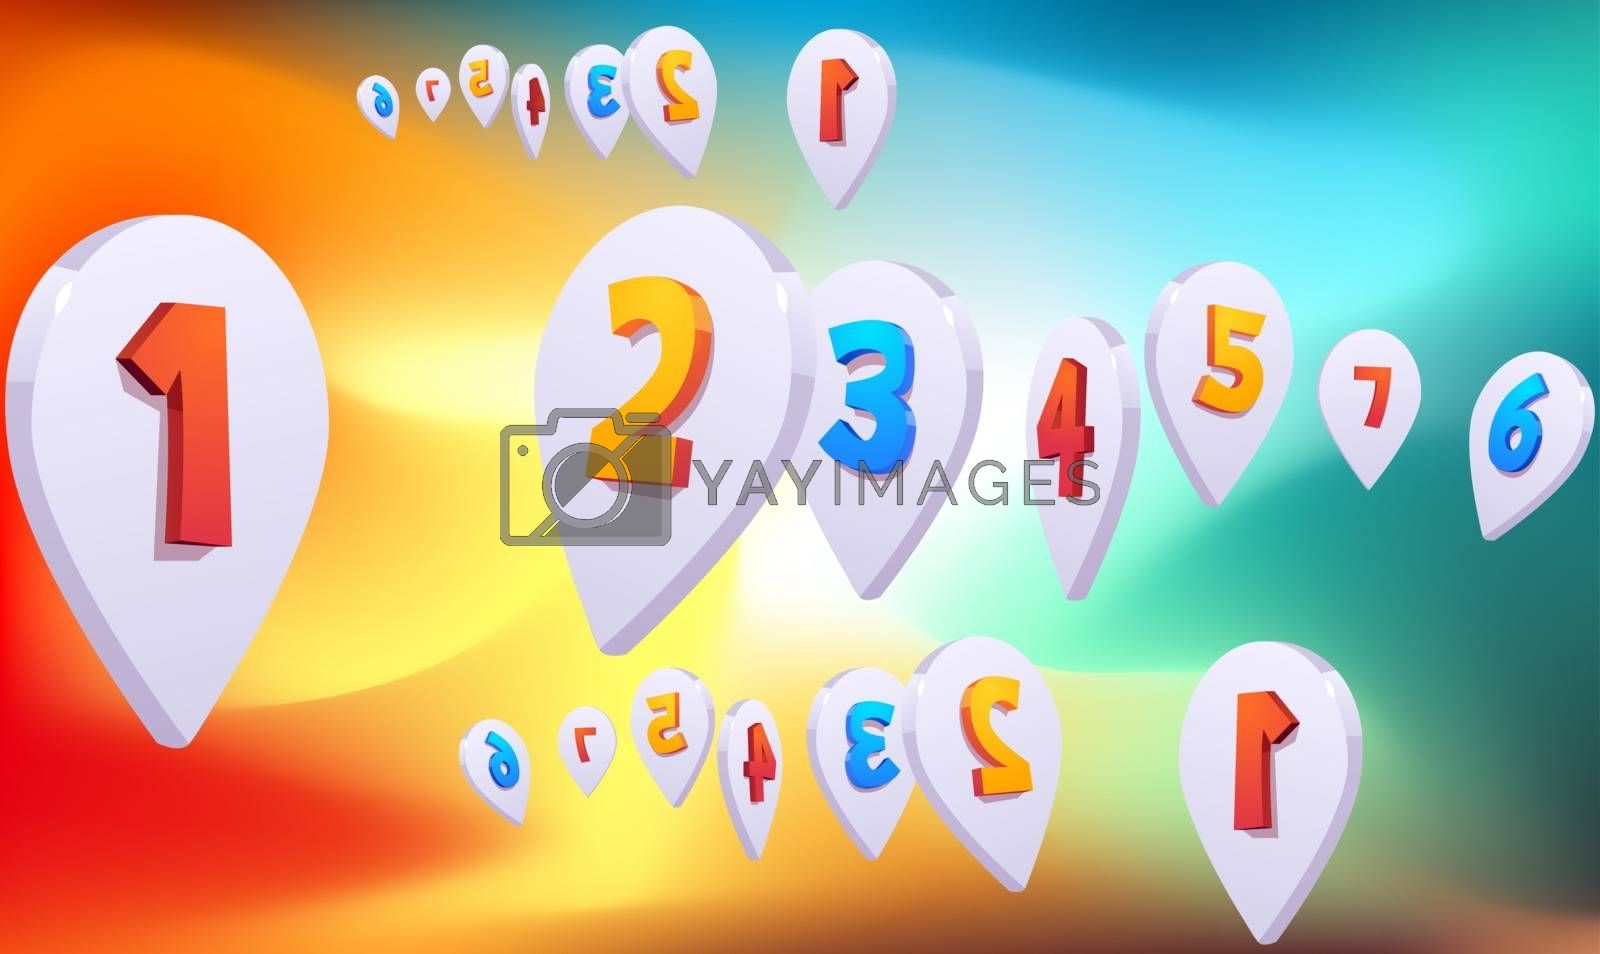 digital textile design of location mark on abstract background